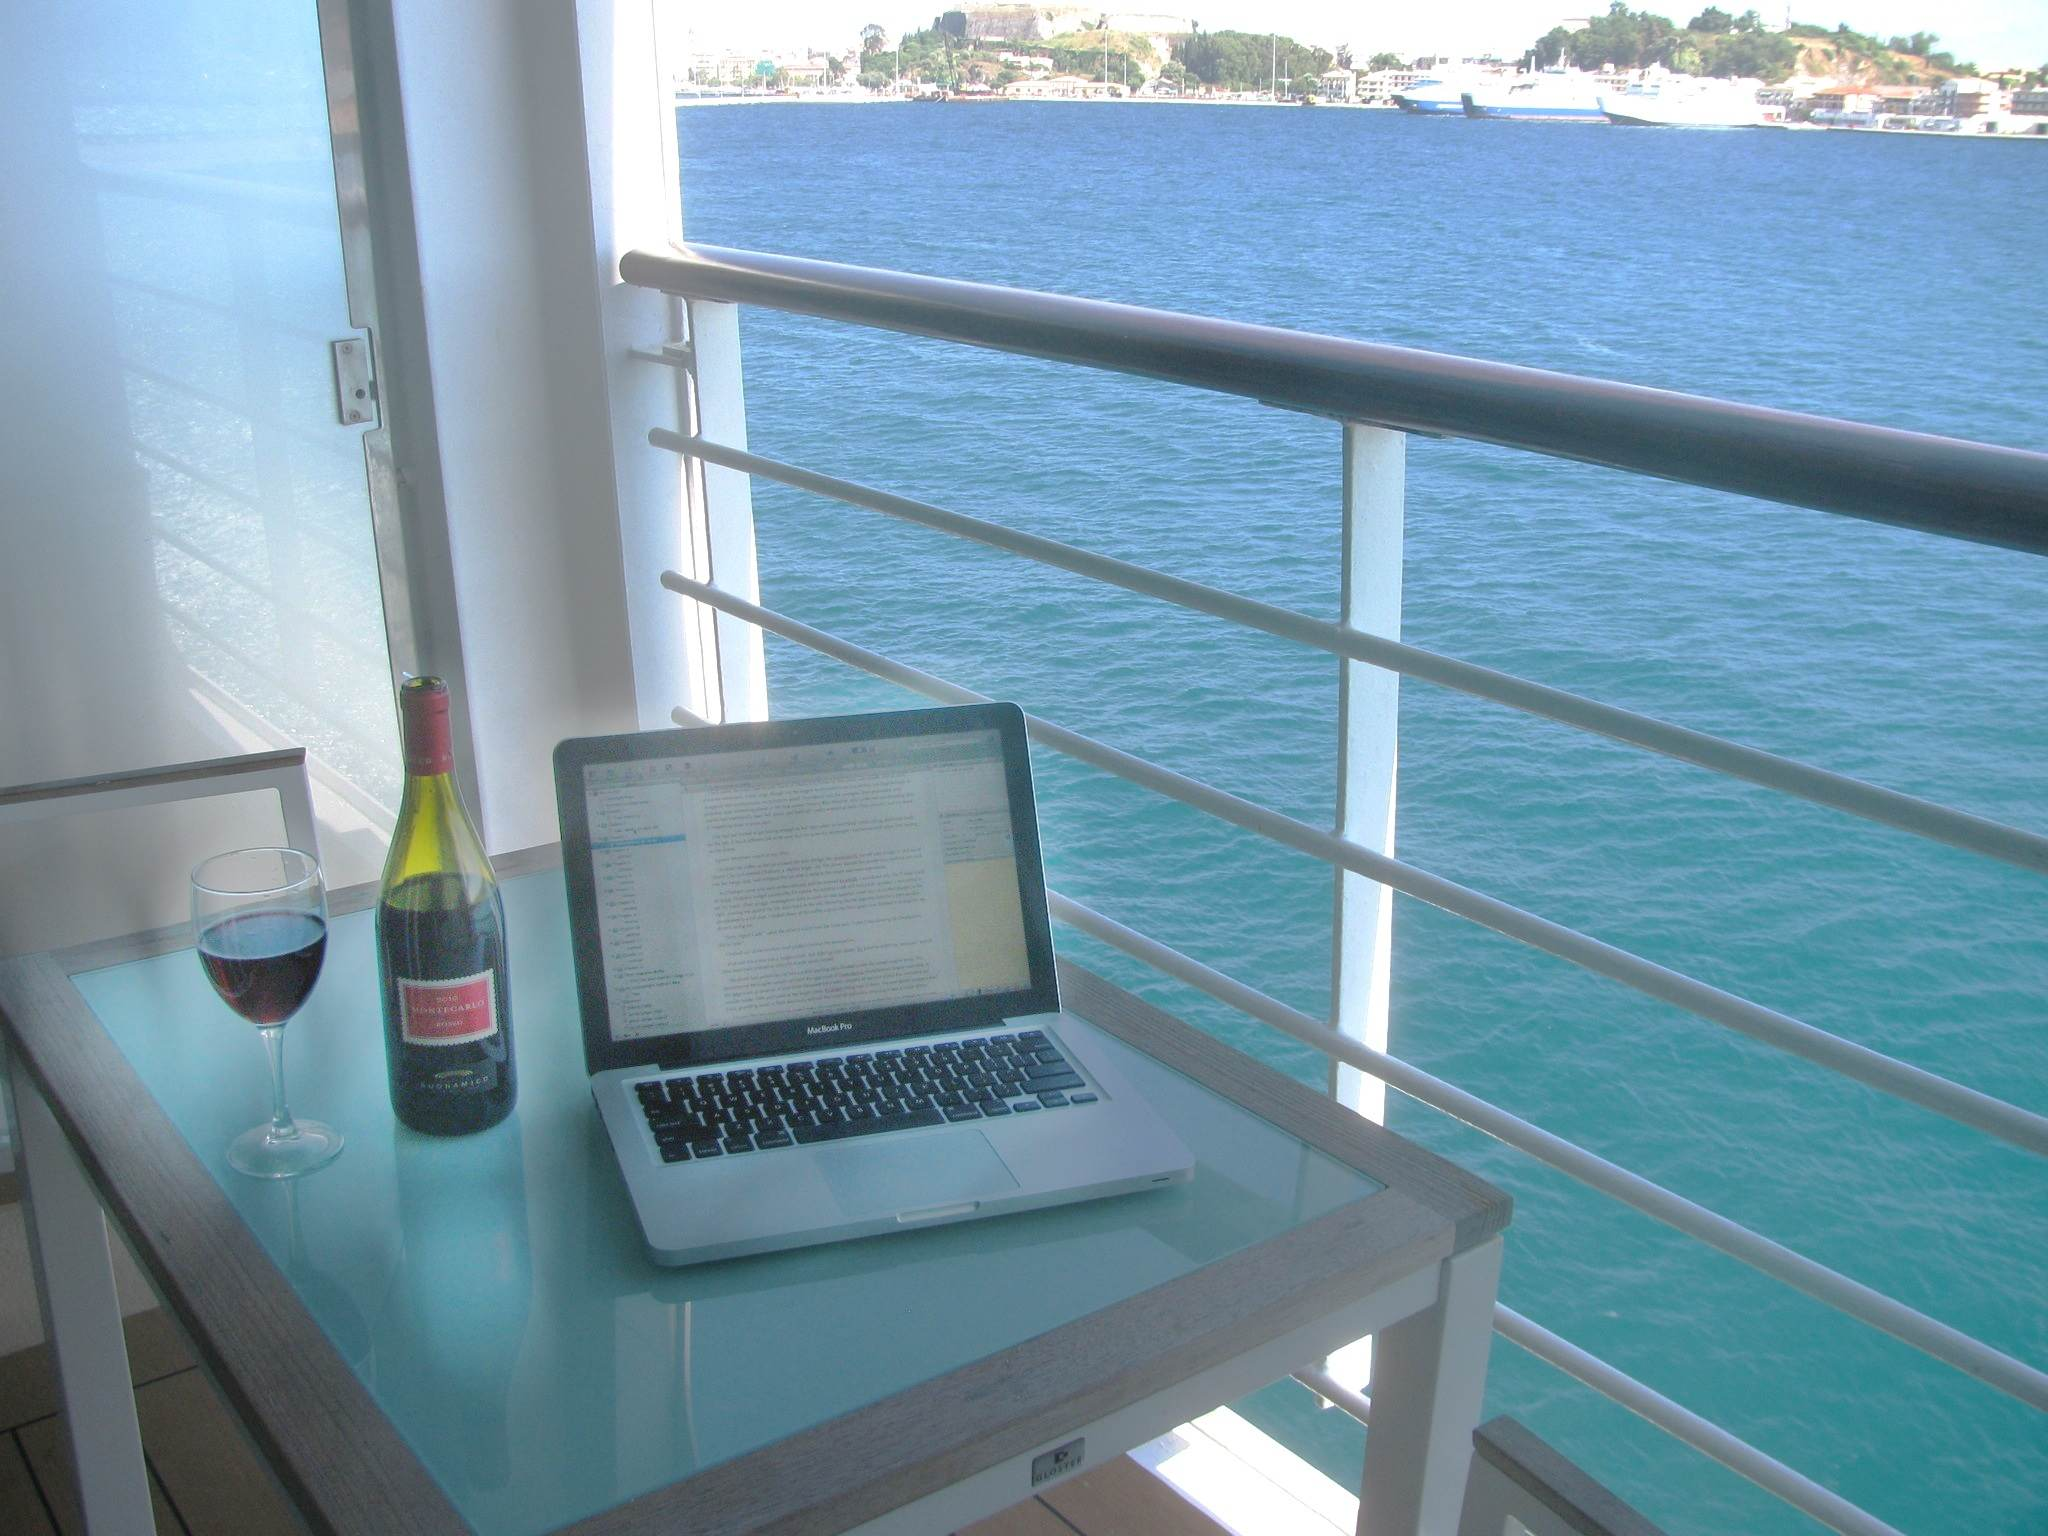 The Traveling Writer